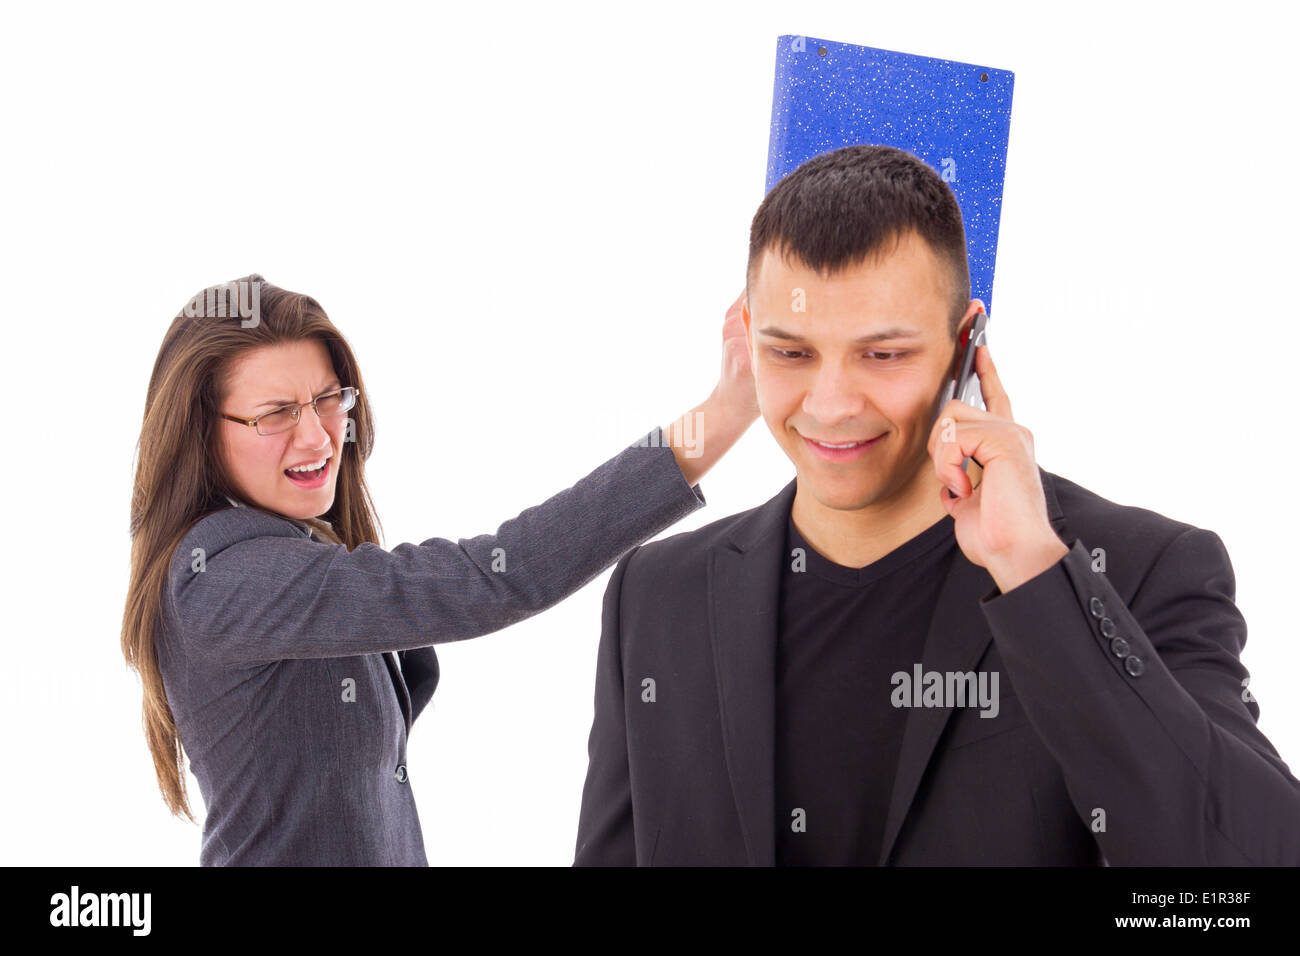 man cheating and woman punching him in head - Stock Image